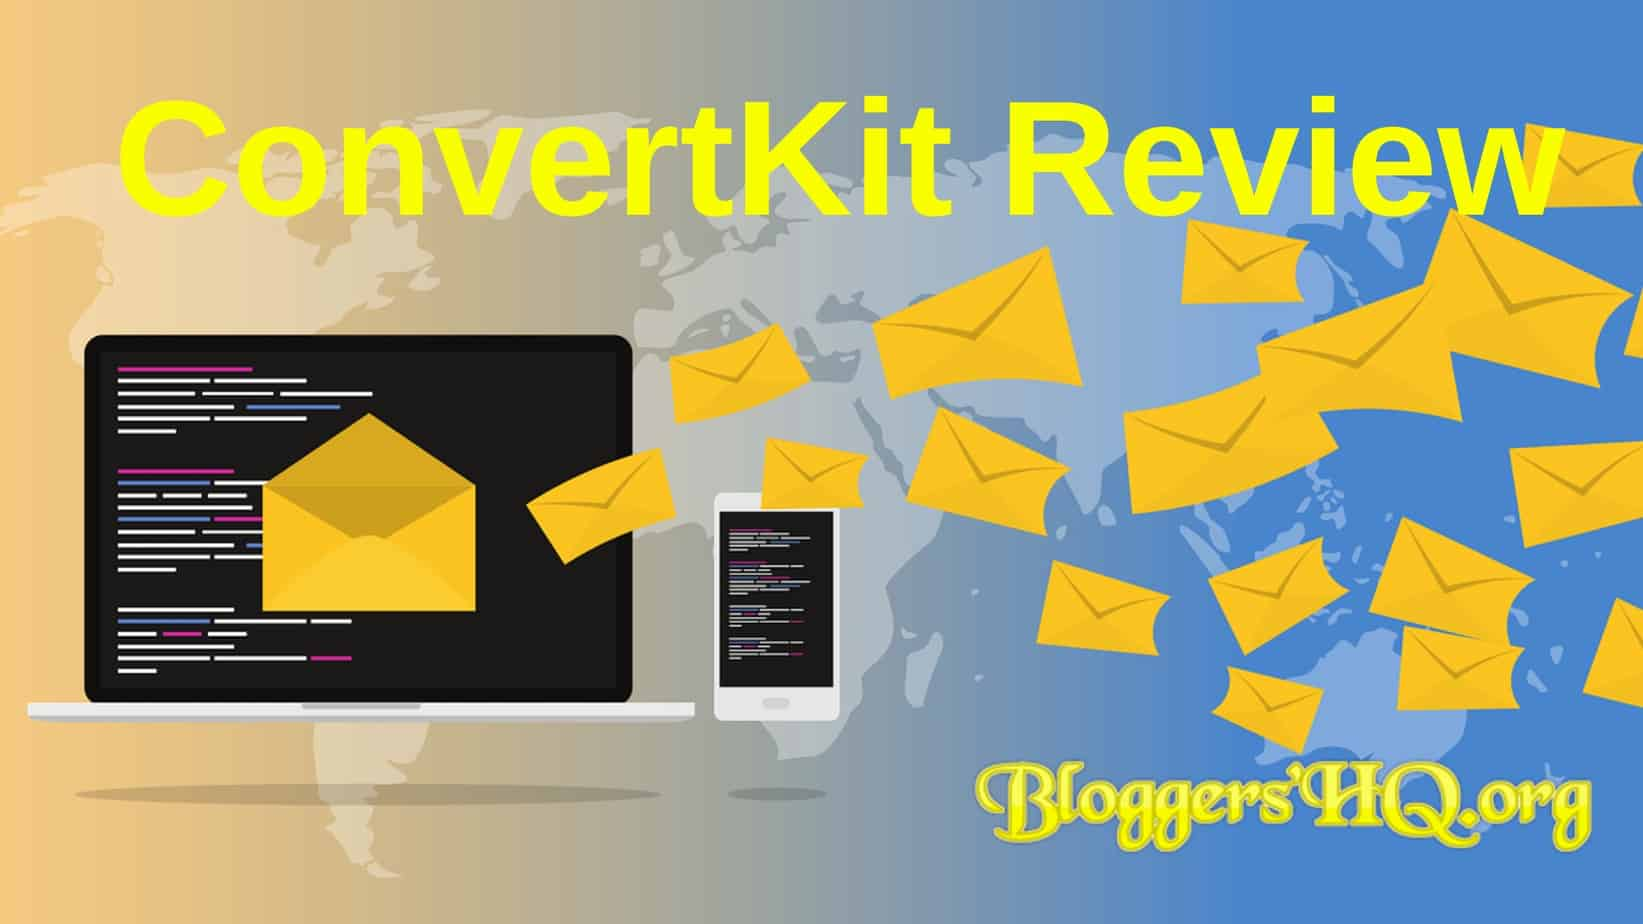 Online Voucher Code 100 Off Convertkit Email Marketing May 2020